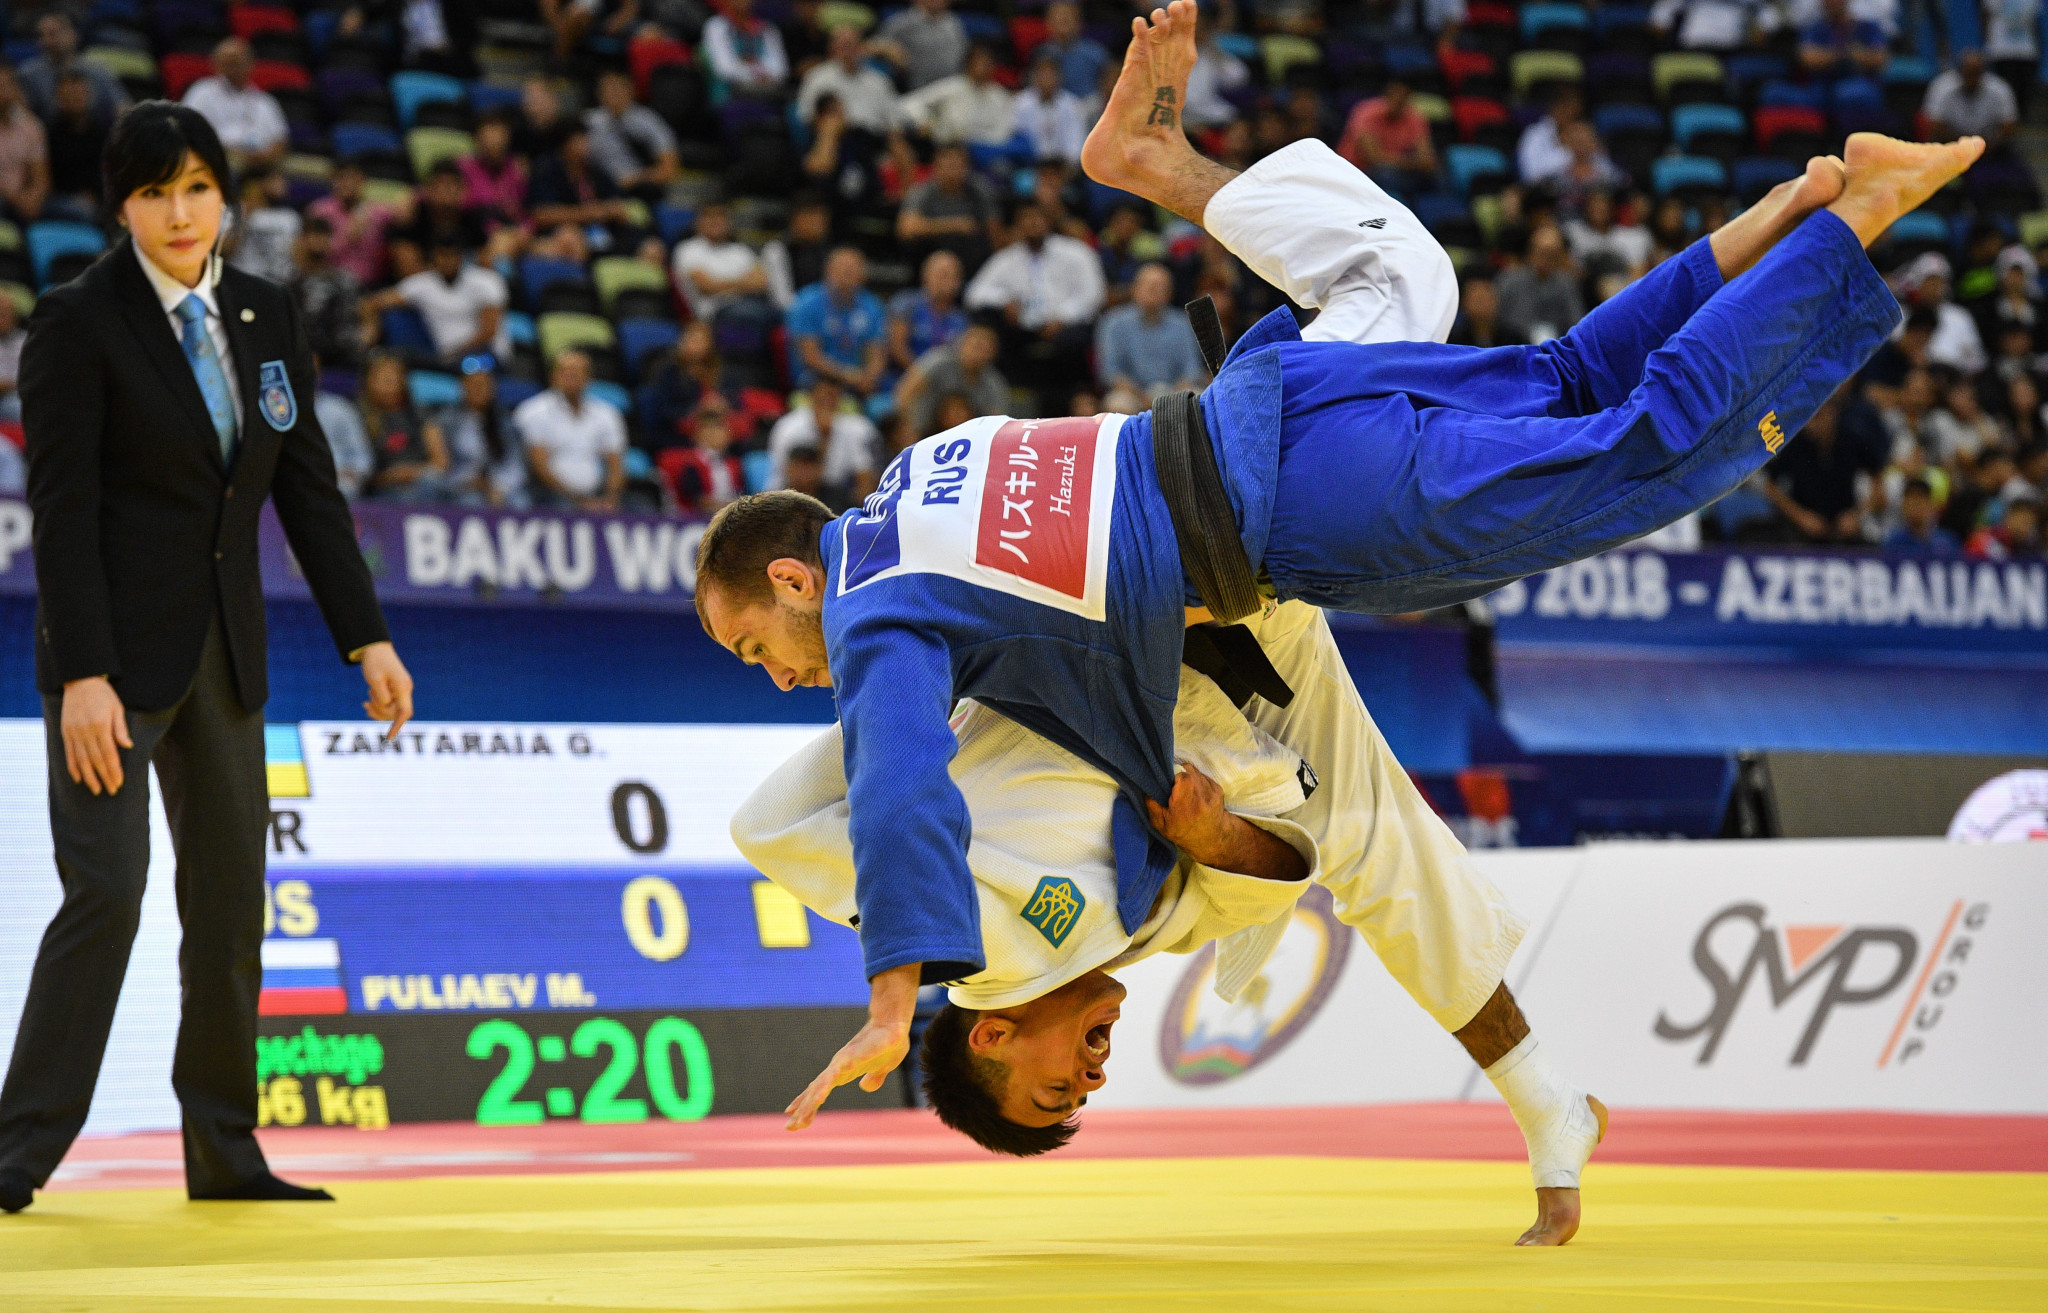 Japanese siblings win double gold on second day of IJF World Championships